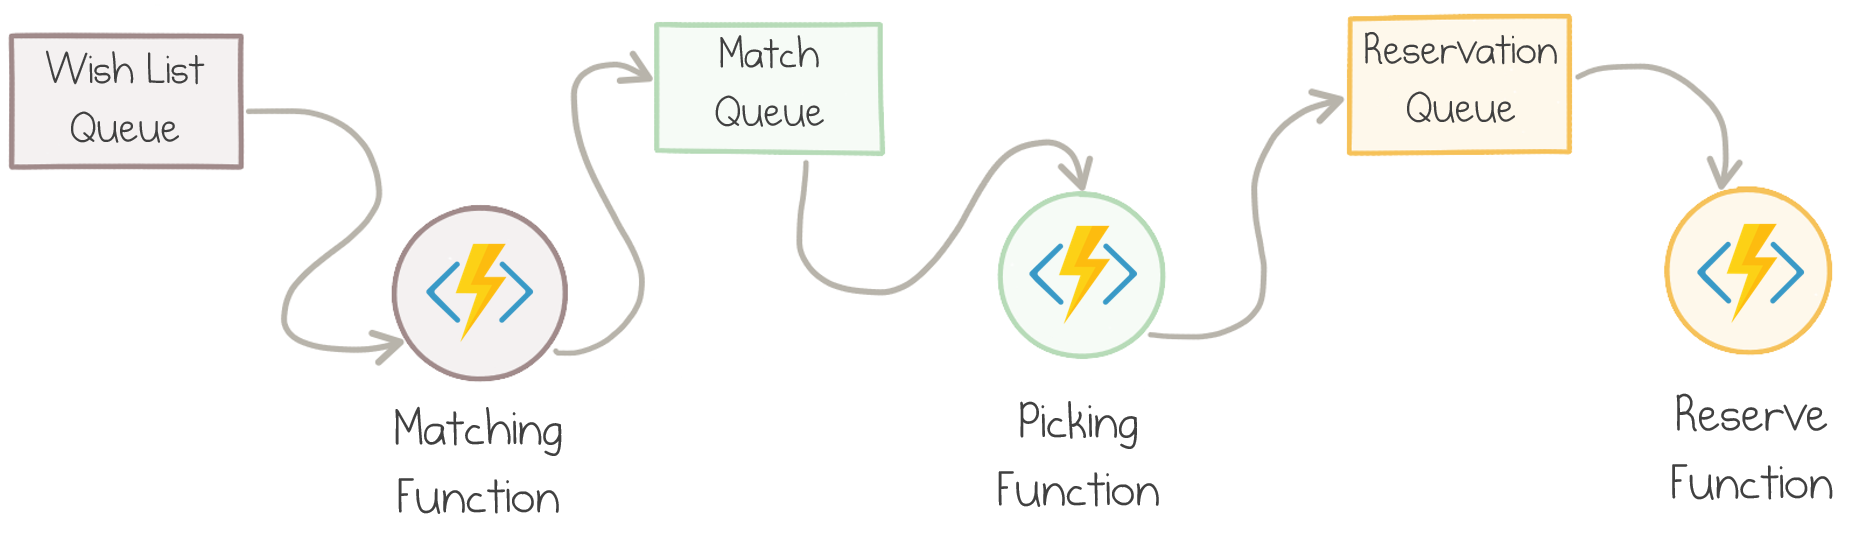 Workflow Design with Azure Functions and Storage Queues